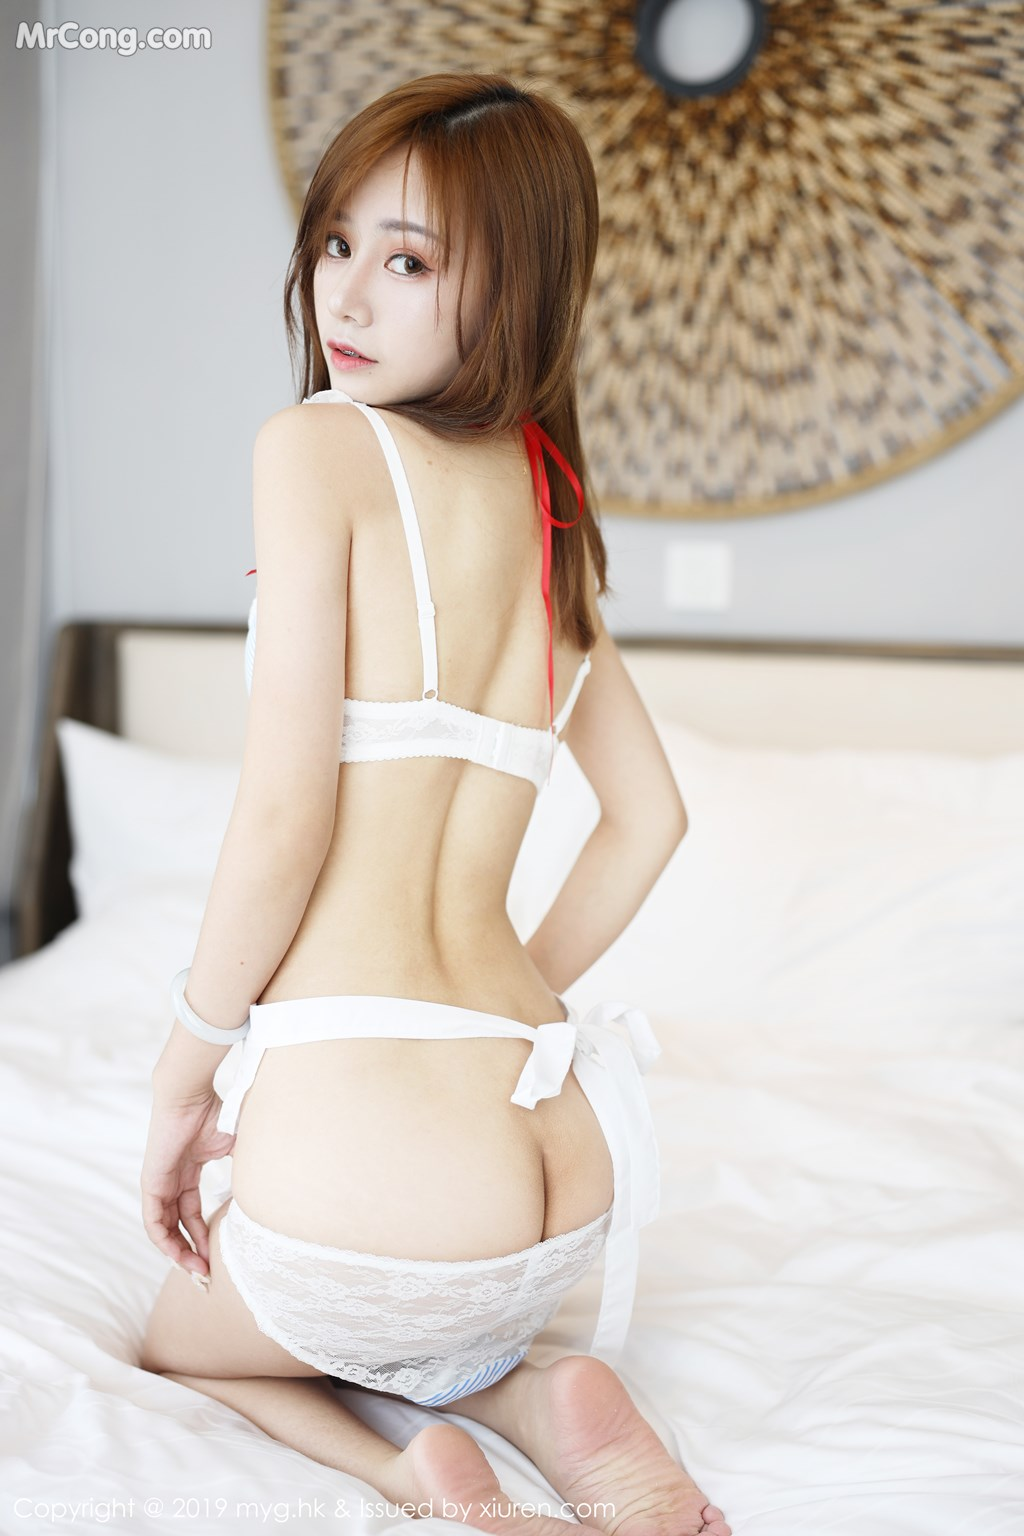 Image MyGirl-Vol.356-real-MrCong.com-029 in post MyGirl Vol.356: 羽住real (55 ảnh)